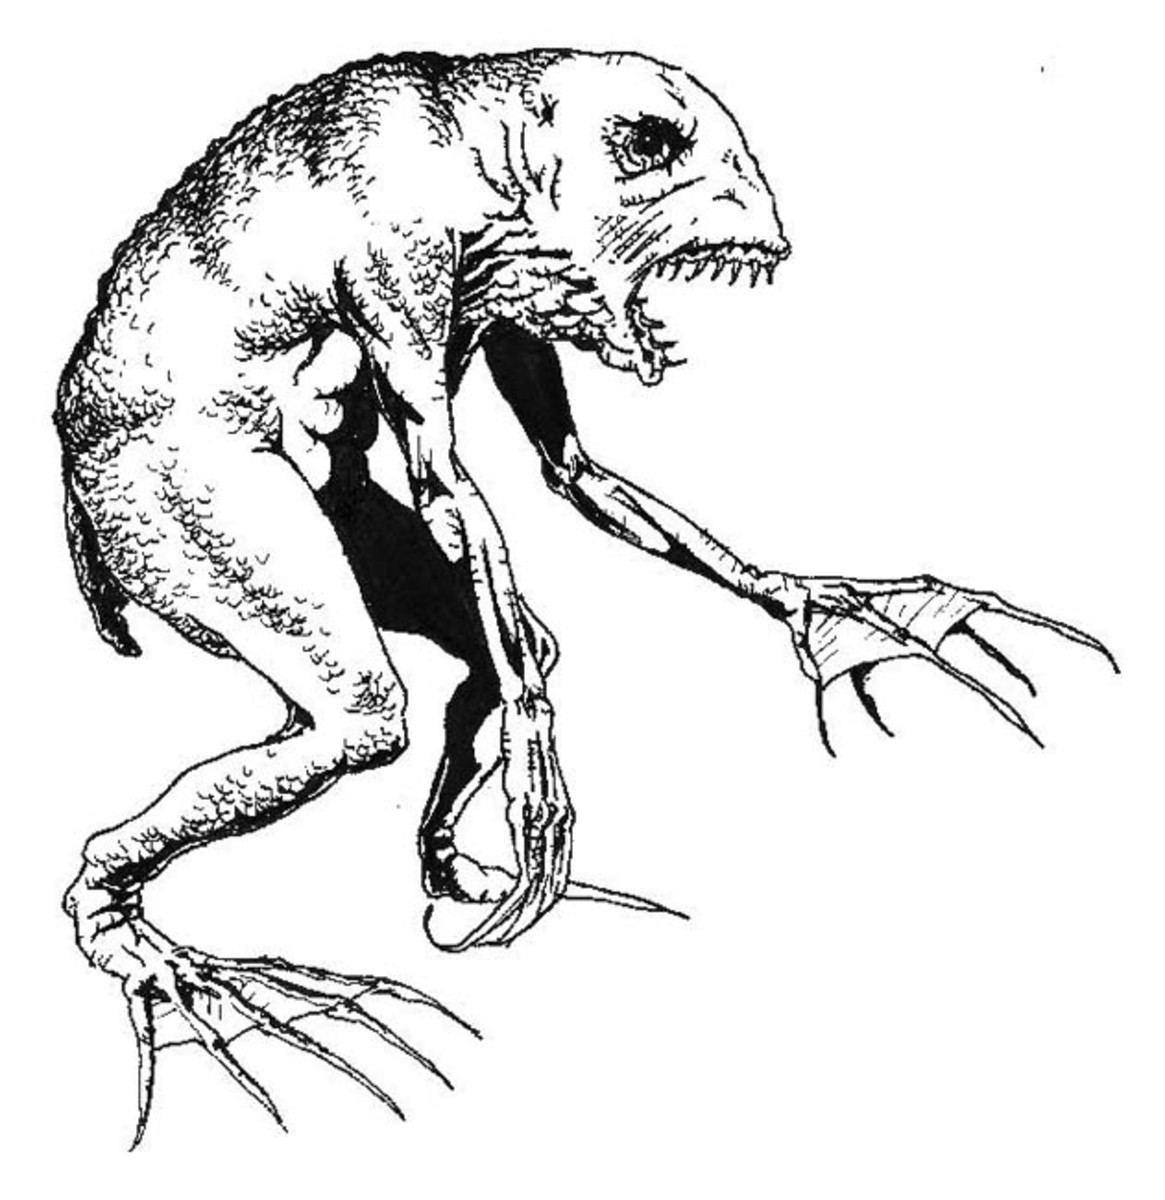 A depiction of one of Lovecraft's Deep Ones